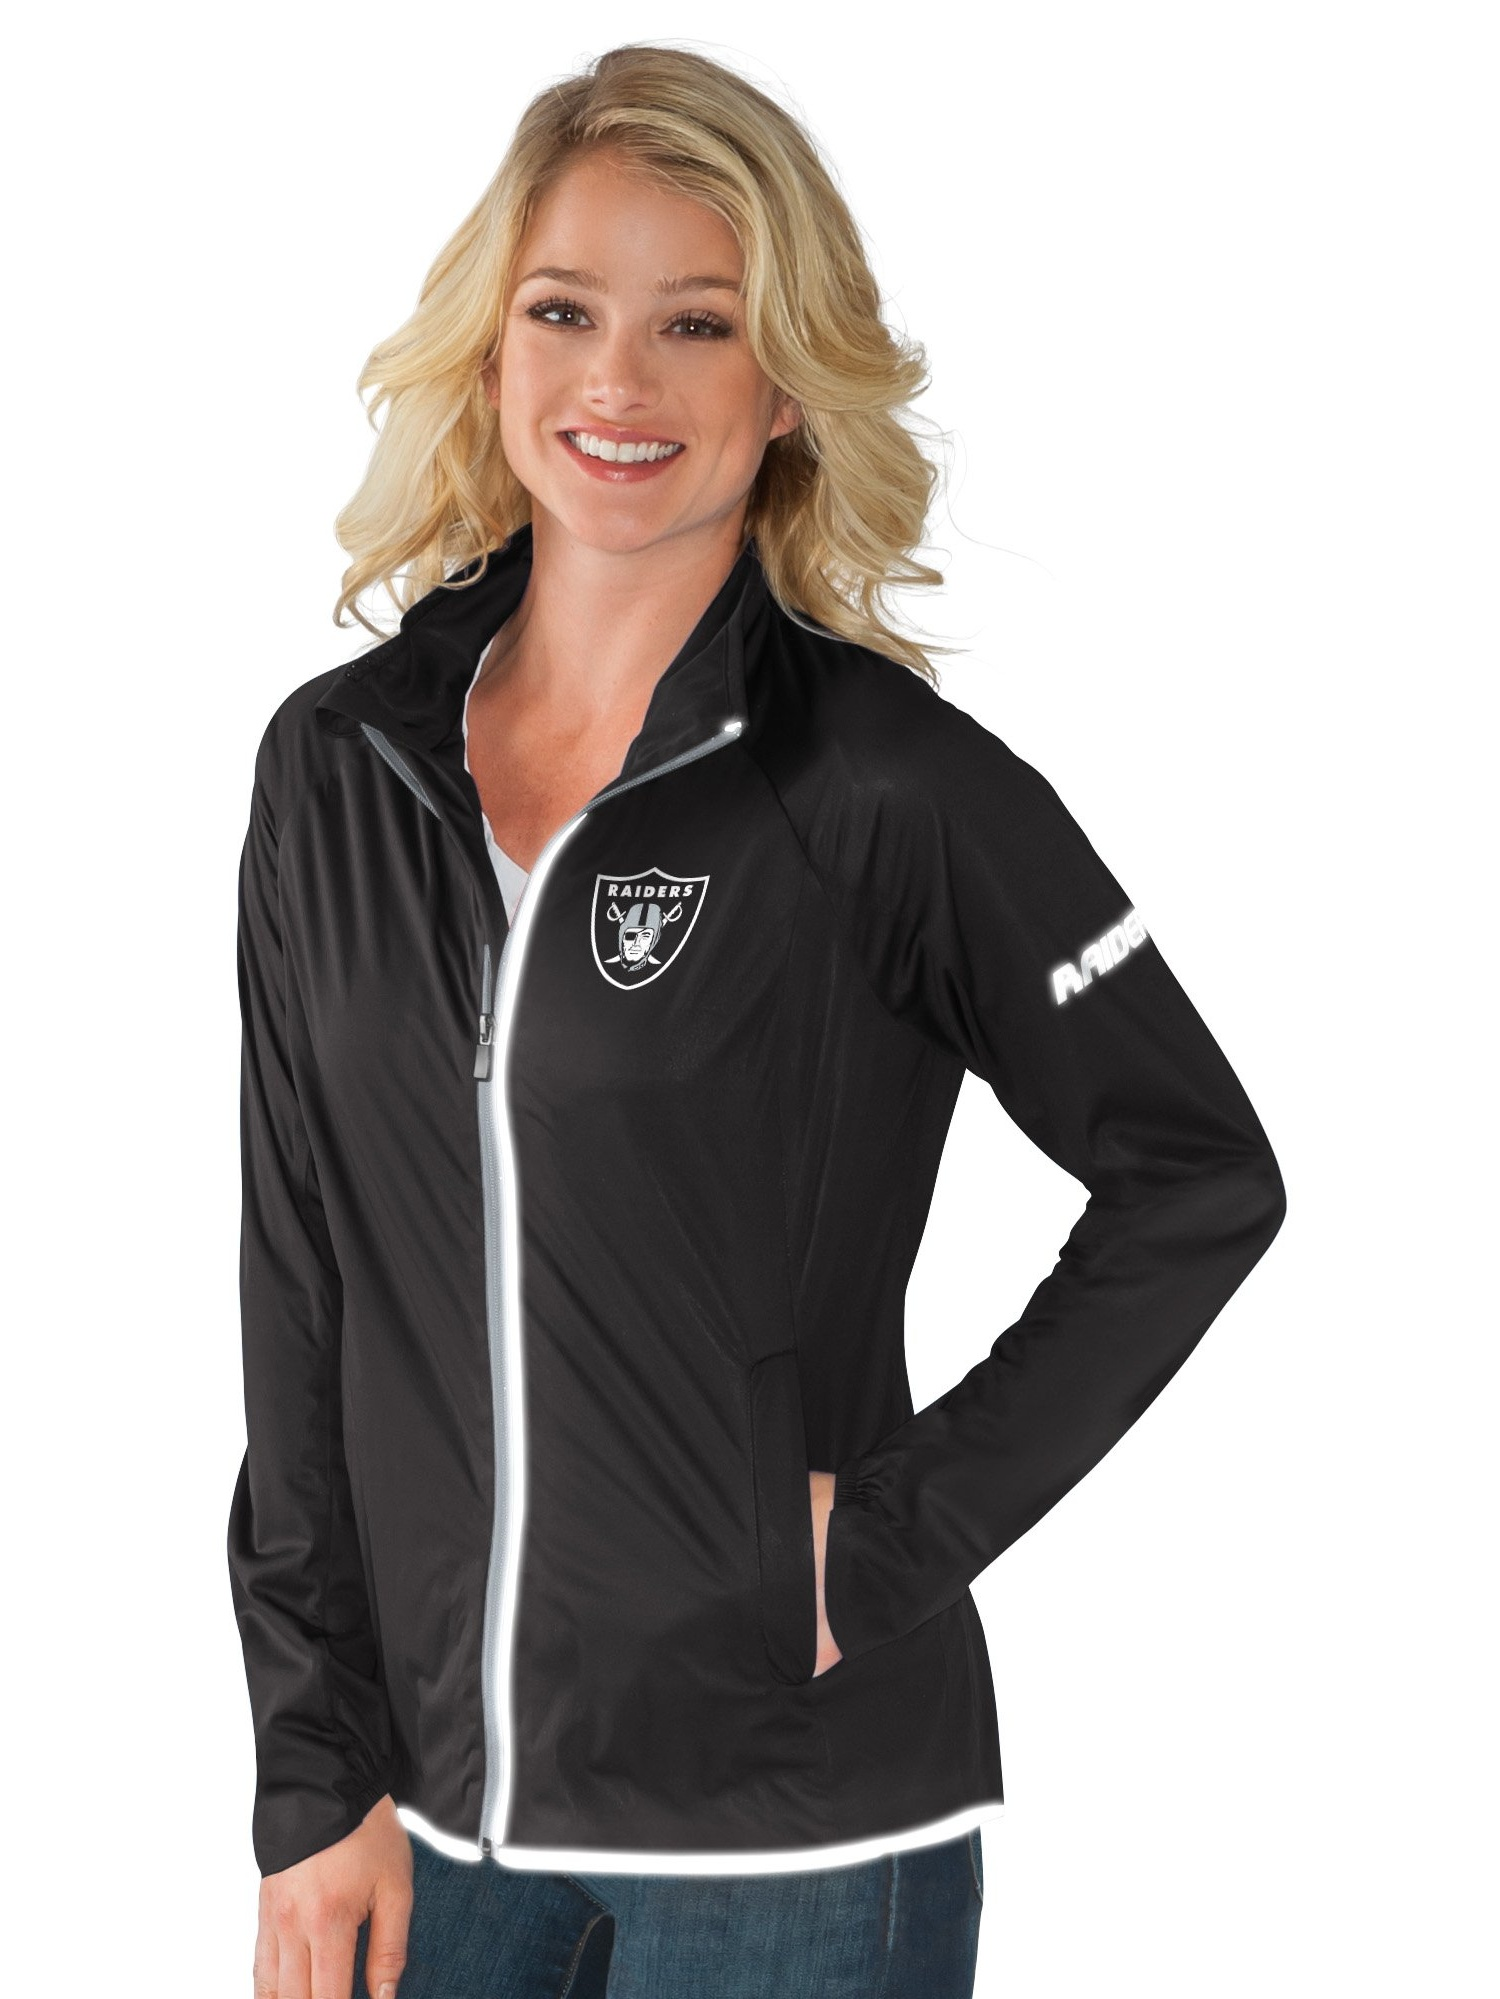 Oakland Raiders Team Colors Full Zip Women's Track Jacket by G-III Sports